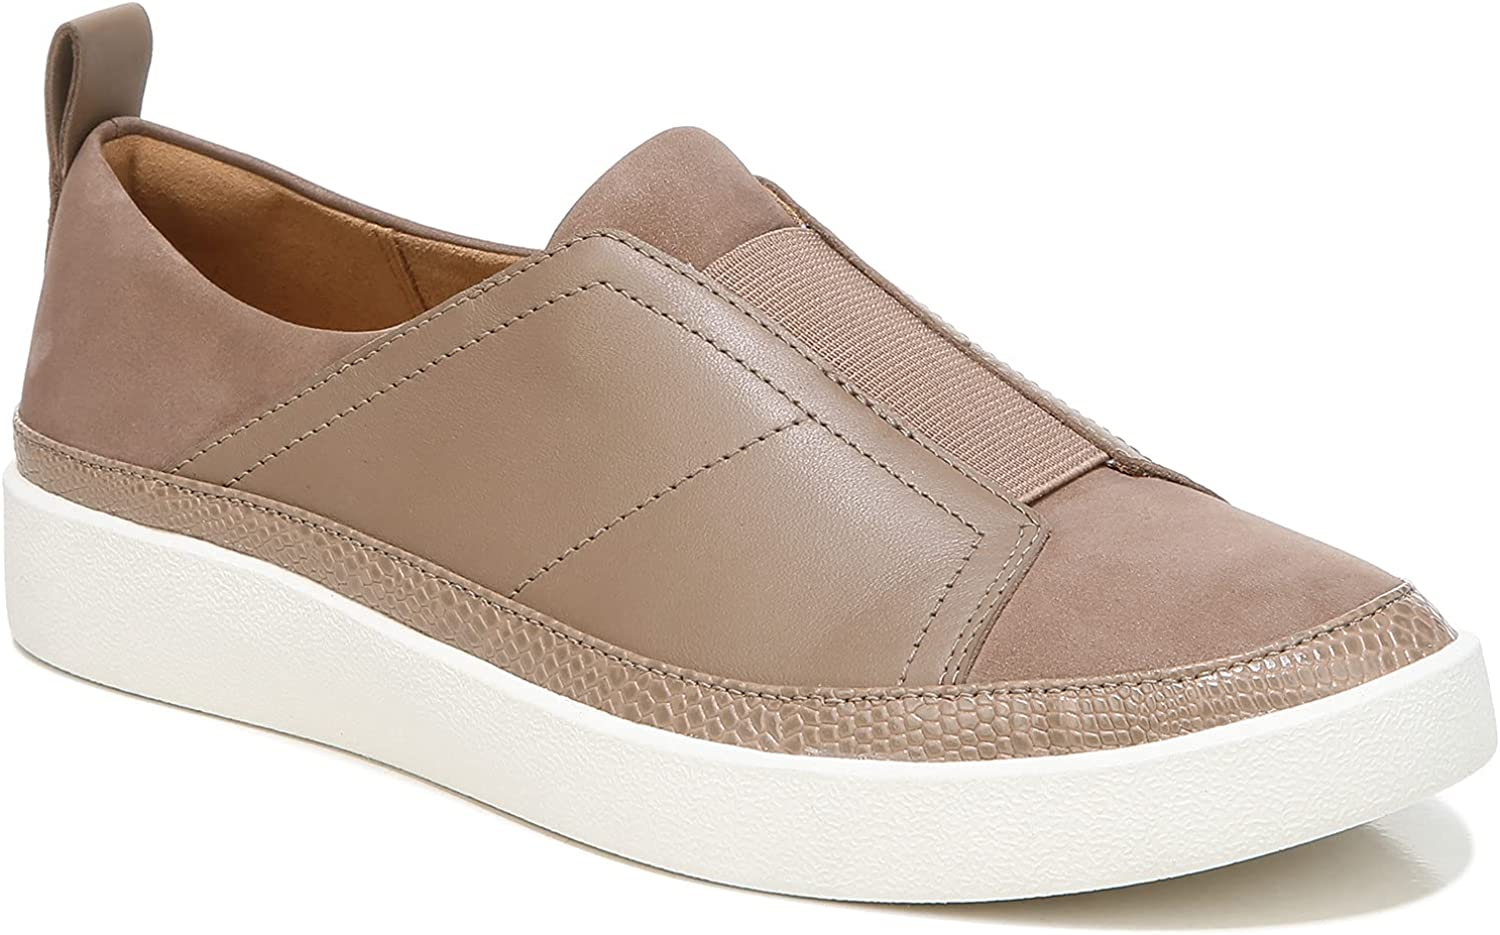 Vionic Women's Essence Zinah Platform Slip-on Fashion Sneaker- Leather Shoes That Include Three-Zone Comfort with Orthotic Insole Arch Support, Medium Fit